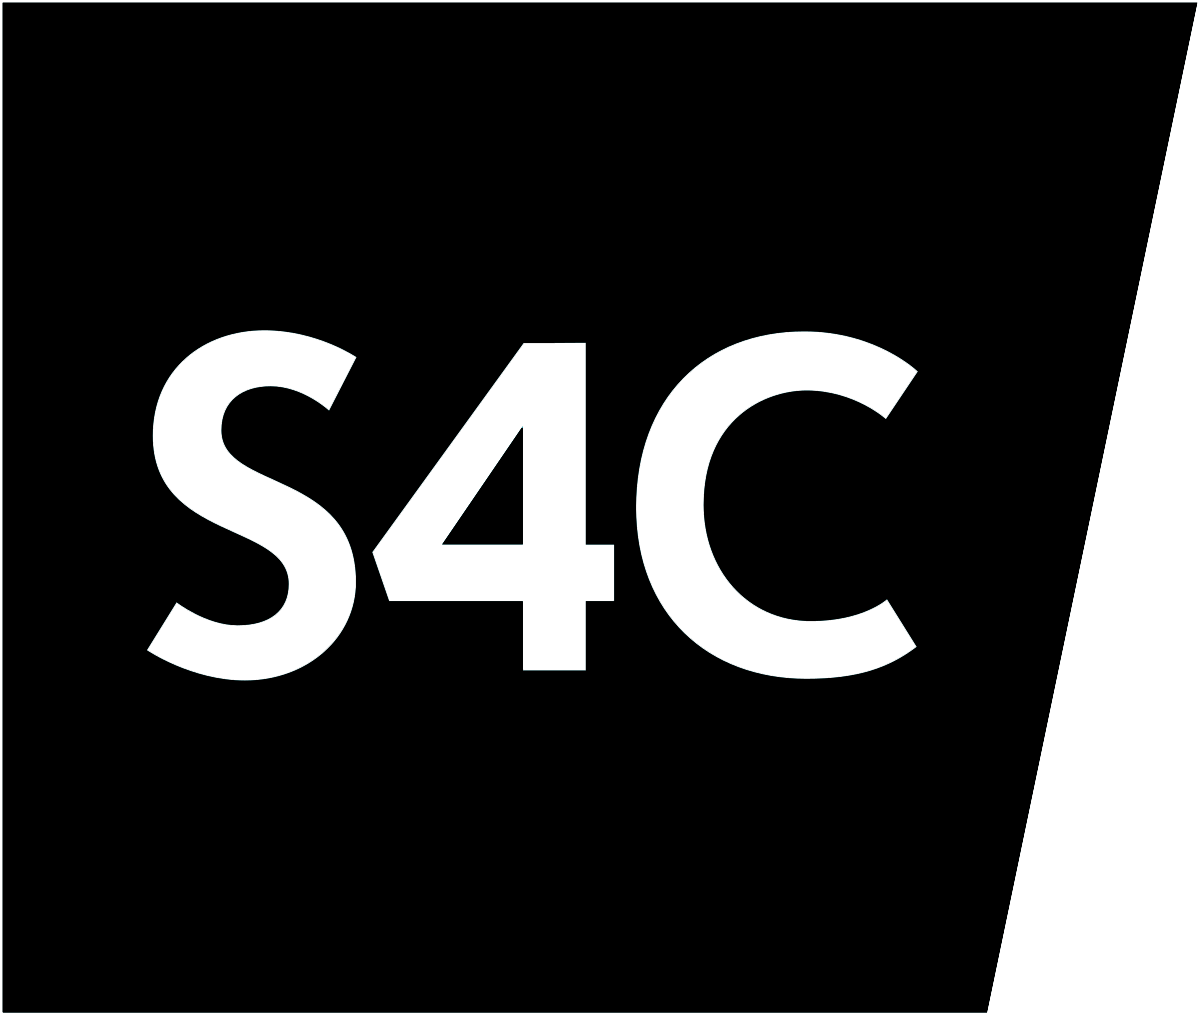 S4c.png